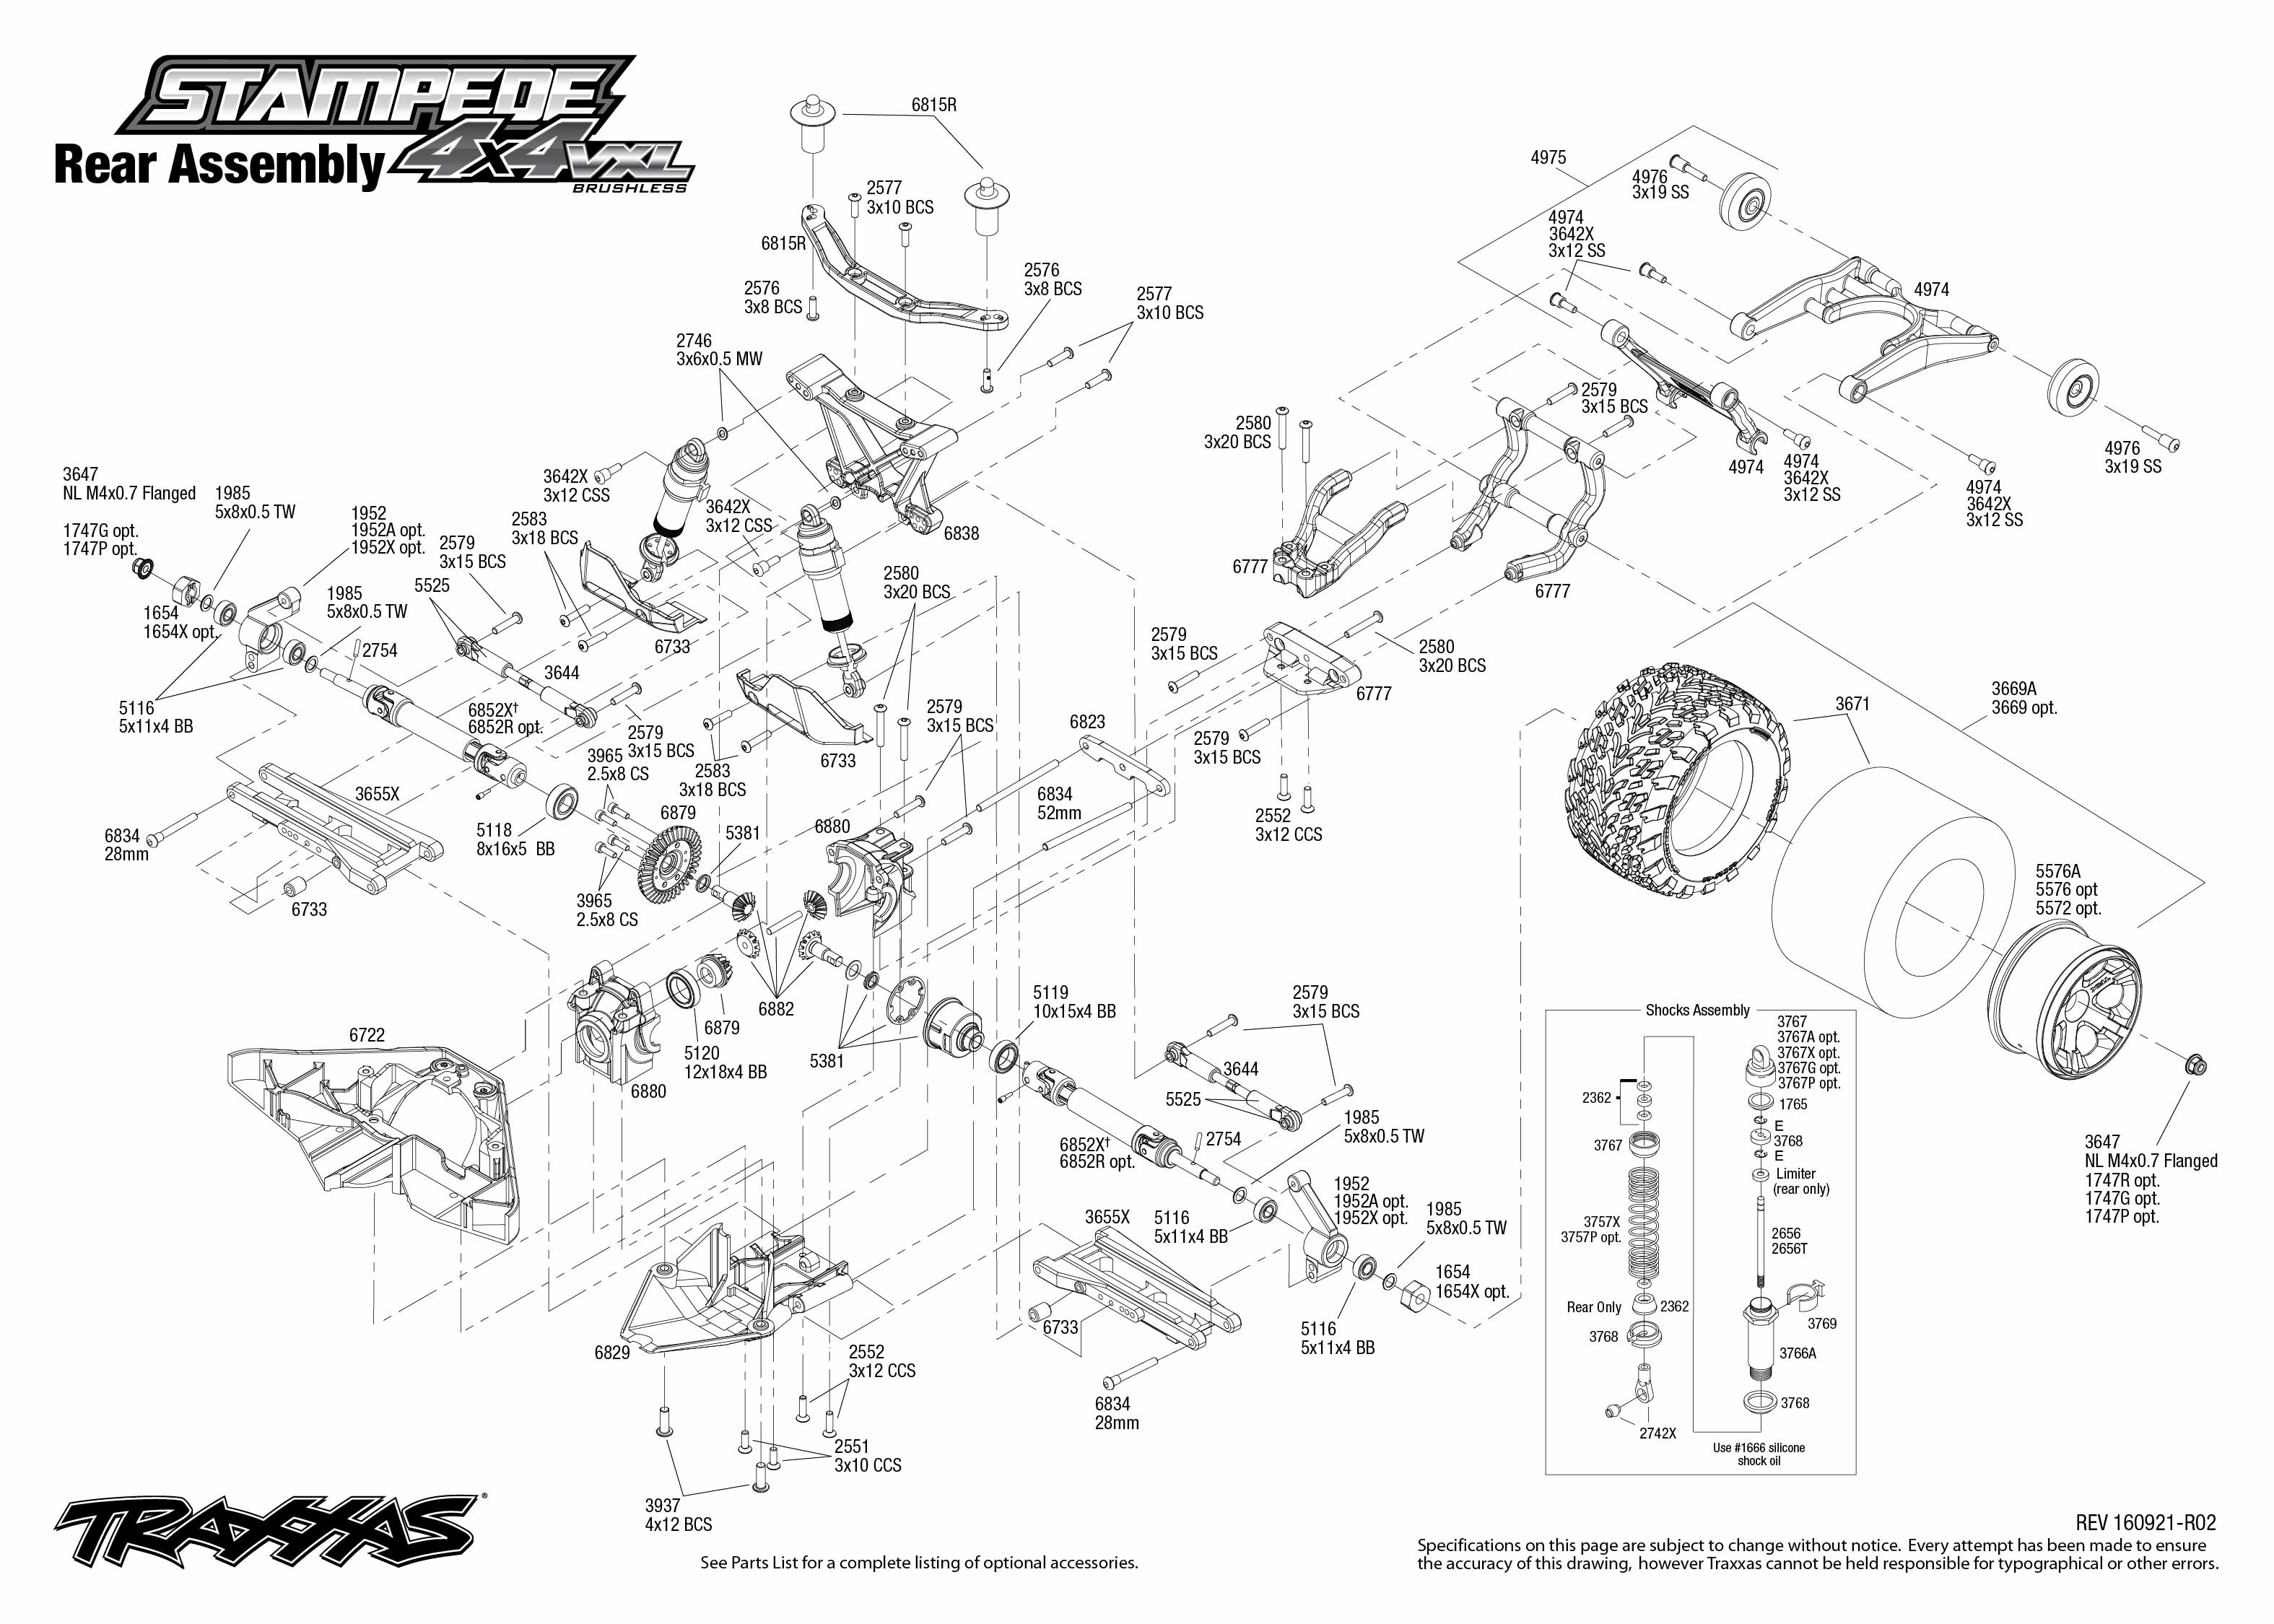 Traxxas Slash Manual Auto Electrical Wiring Diagram Index Of Tiedostot Stampede 4x4 Vxl Exploded View 110 4wd Tqi Tsm Rtr